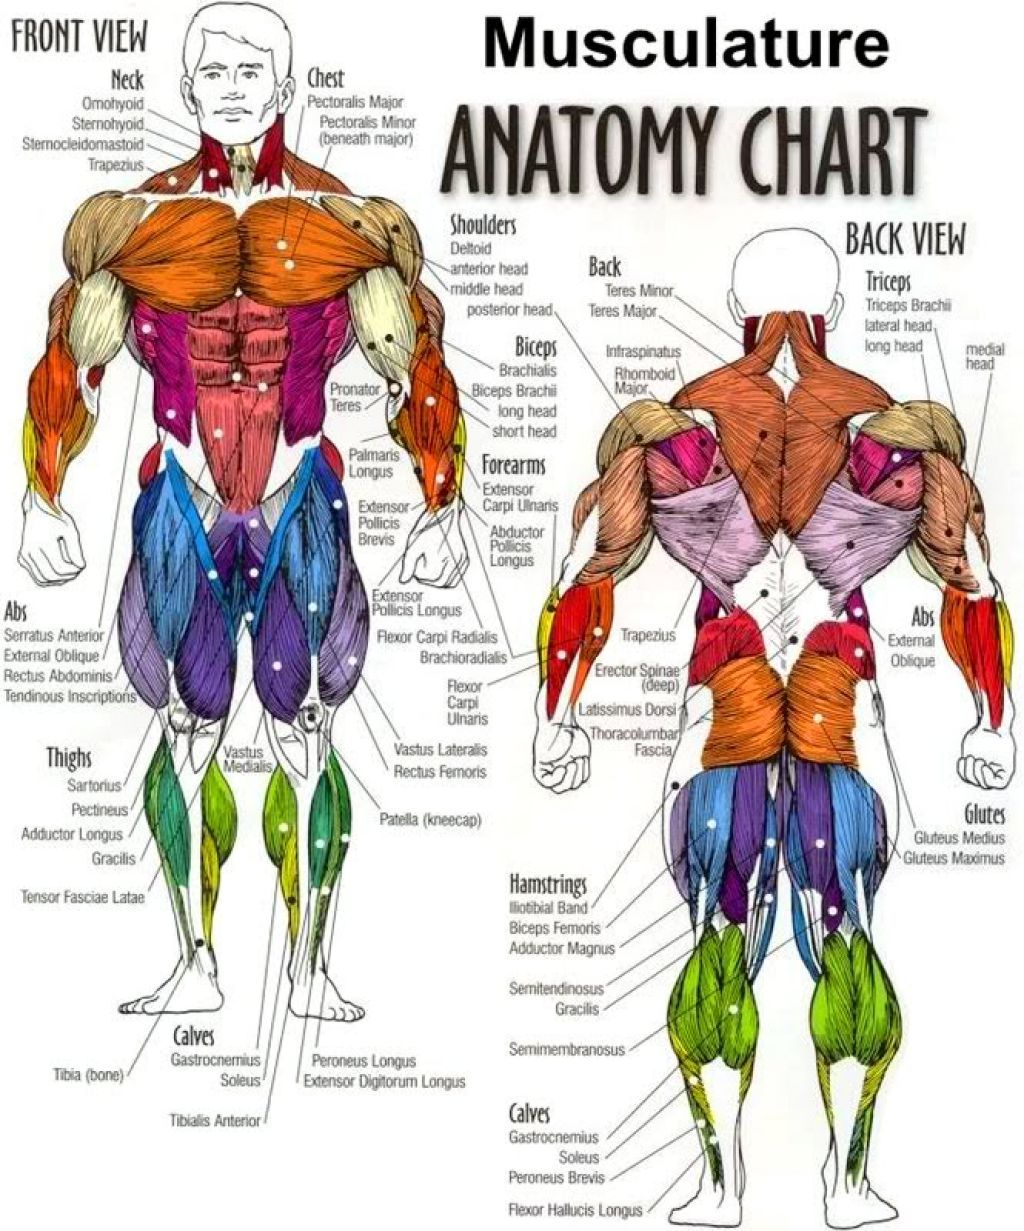 muscular system anatomical chart hd - google search | anatomy, Cephalic Vein